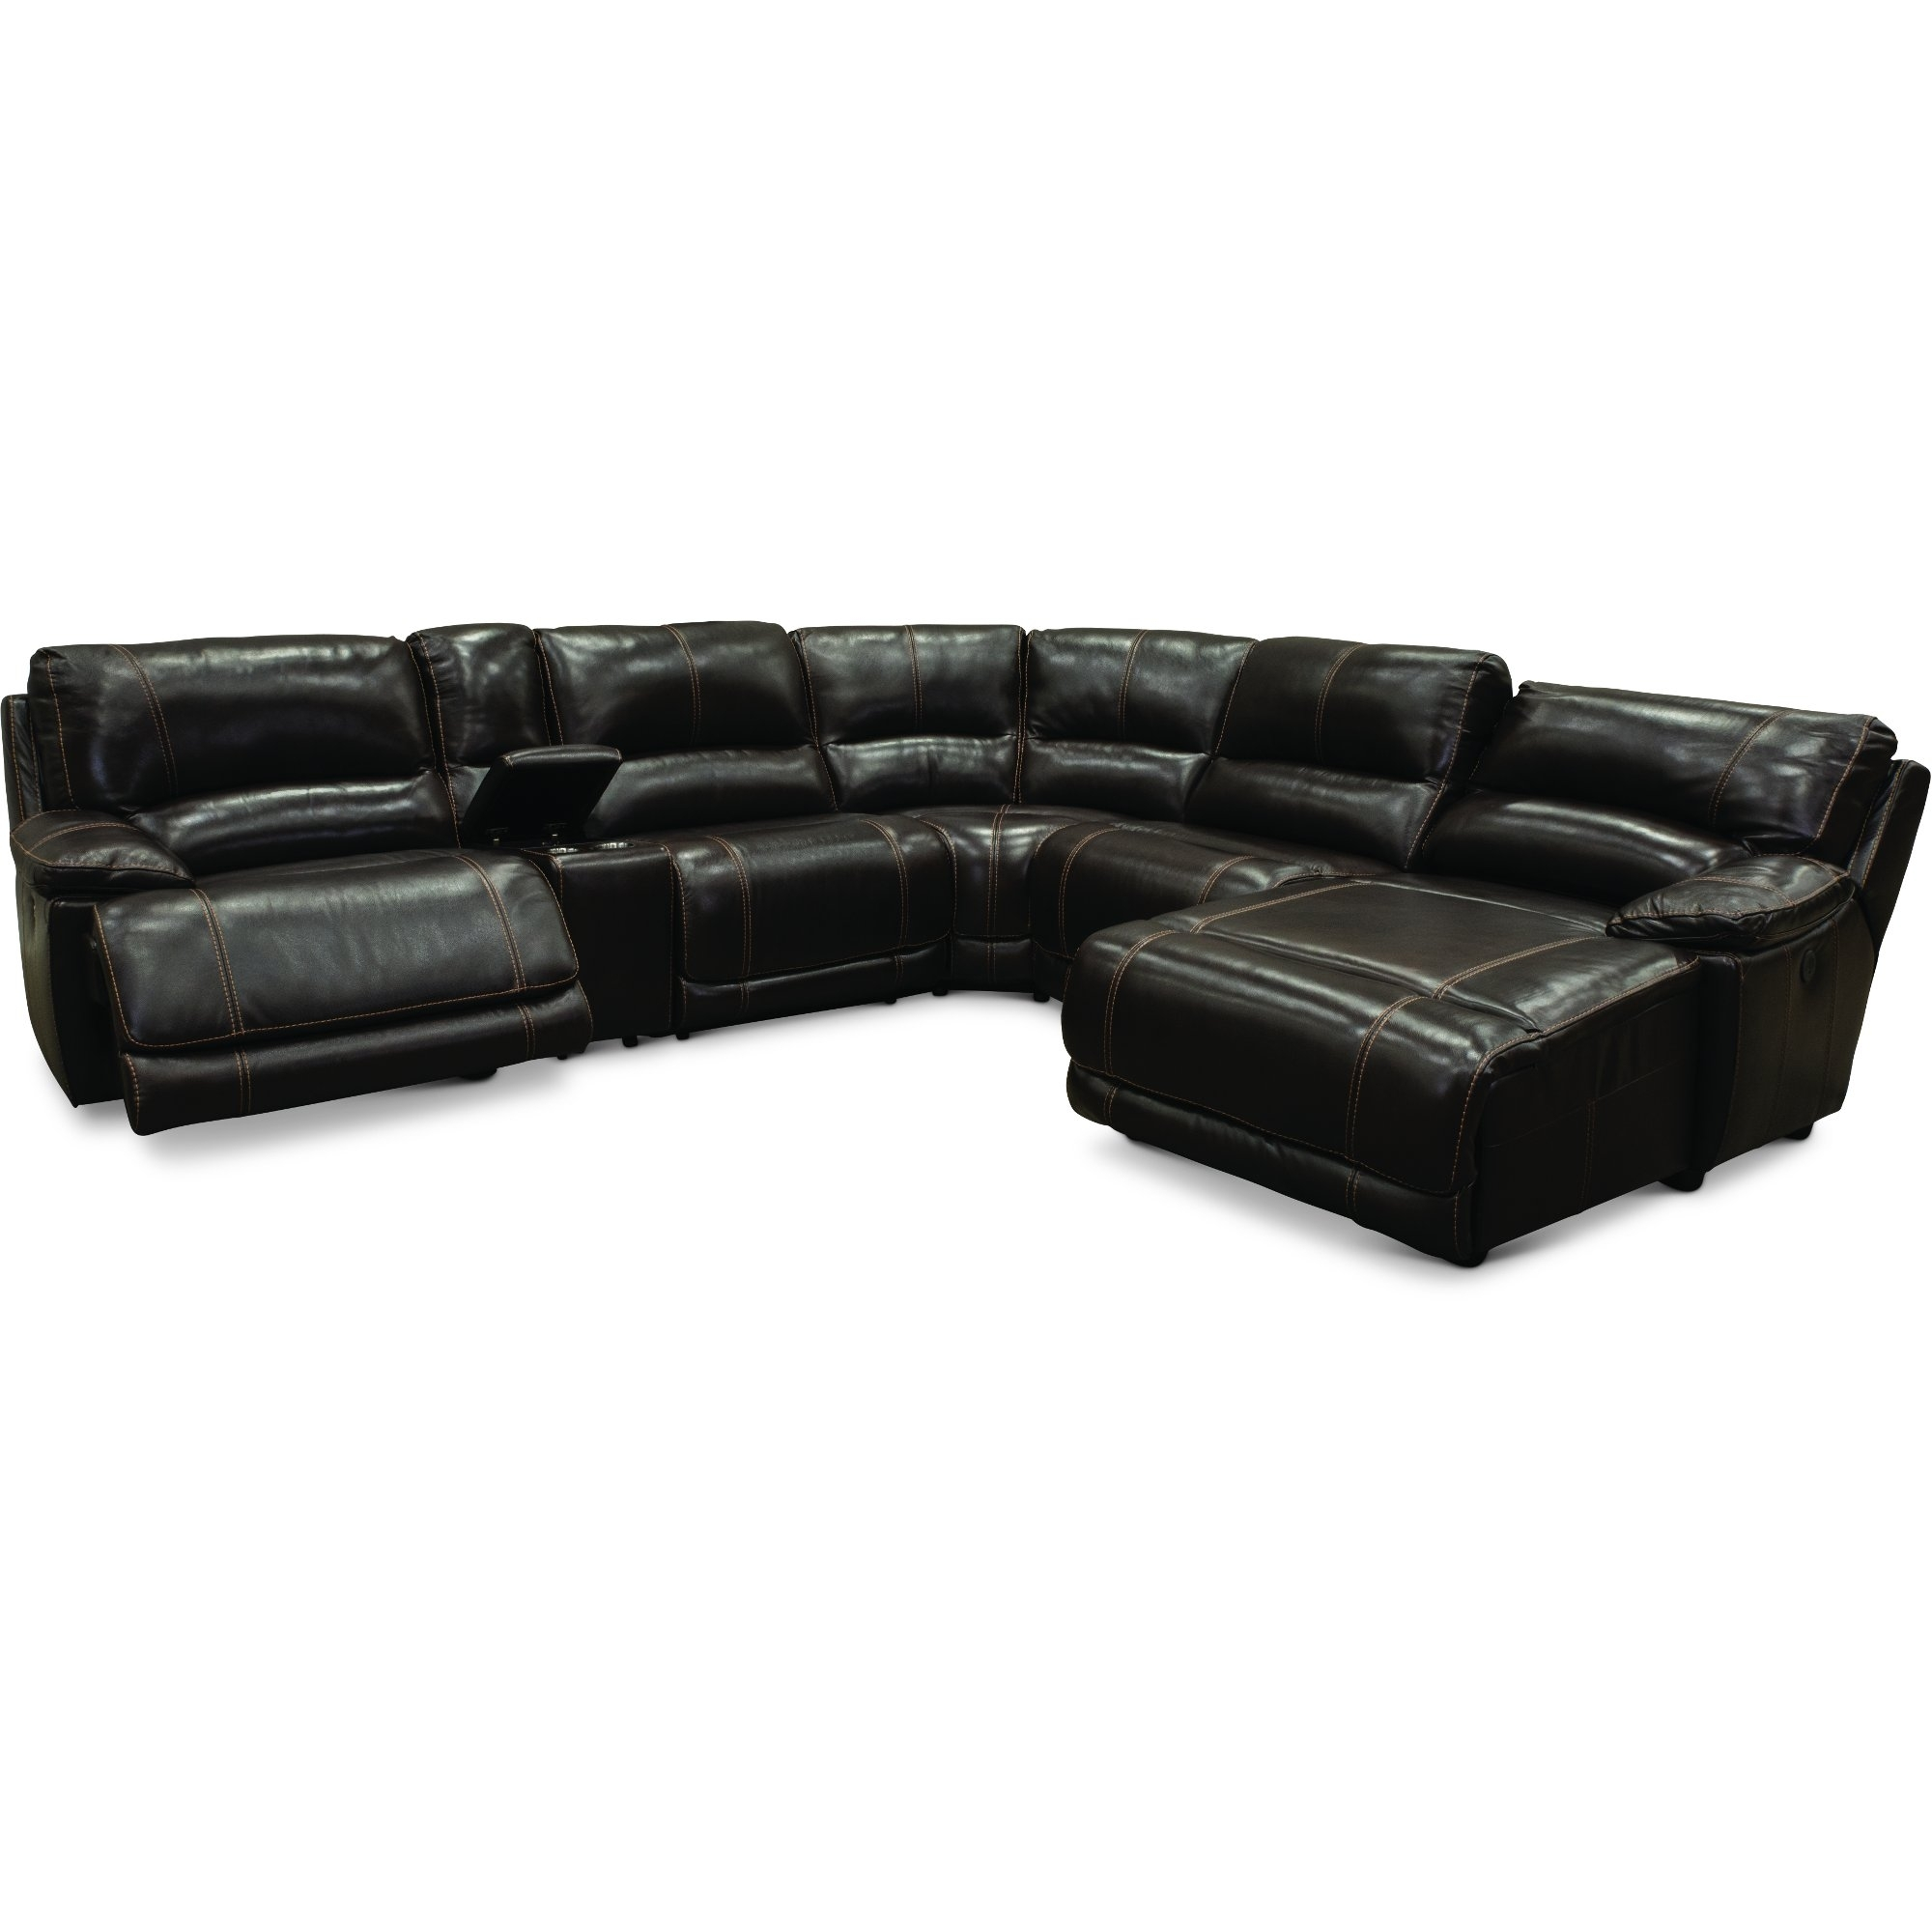 Brown 6 Piece Power Reclining Sectional Sofa – Brant | Rc Willey Throughout Denali Charcoal Grey 6 Piece Reclining Sectionals With 2 Power Headrests (View 6 of 25)